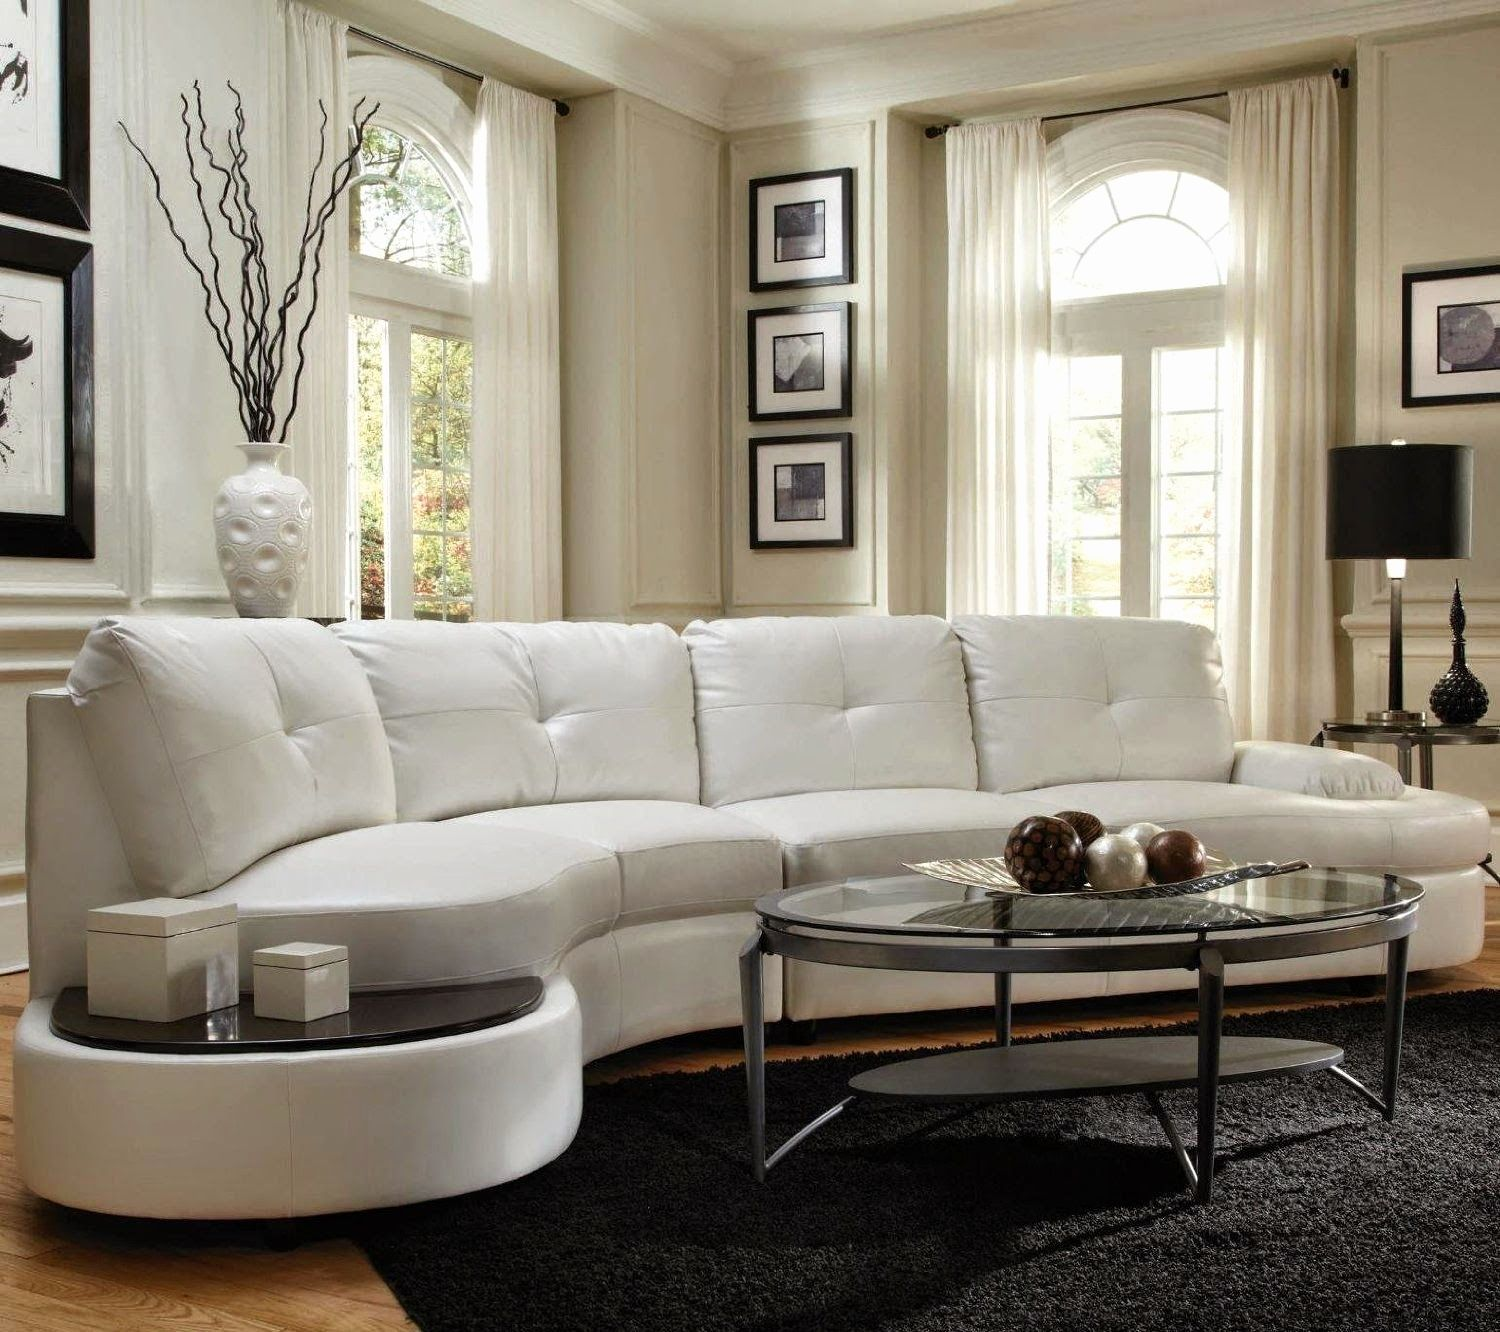 Luxury Contemporary Couches And Sofas Photograpy Furniture Using Curved Sectional So White Furniture Living Room Furniture Design Living Room White Sofa Design